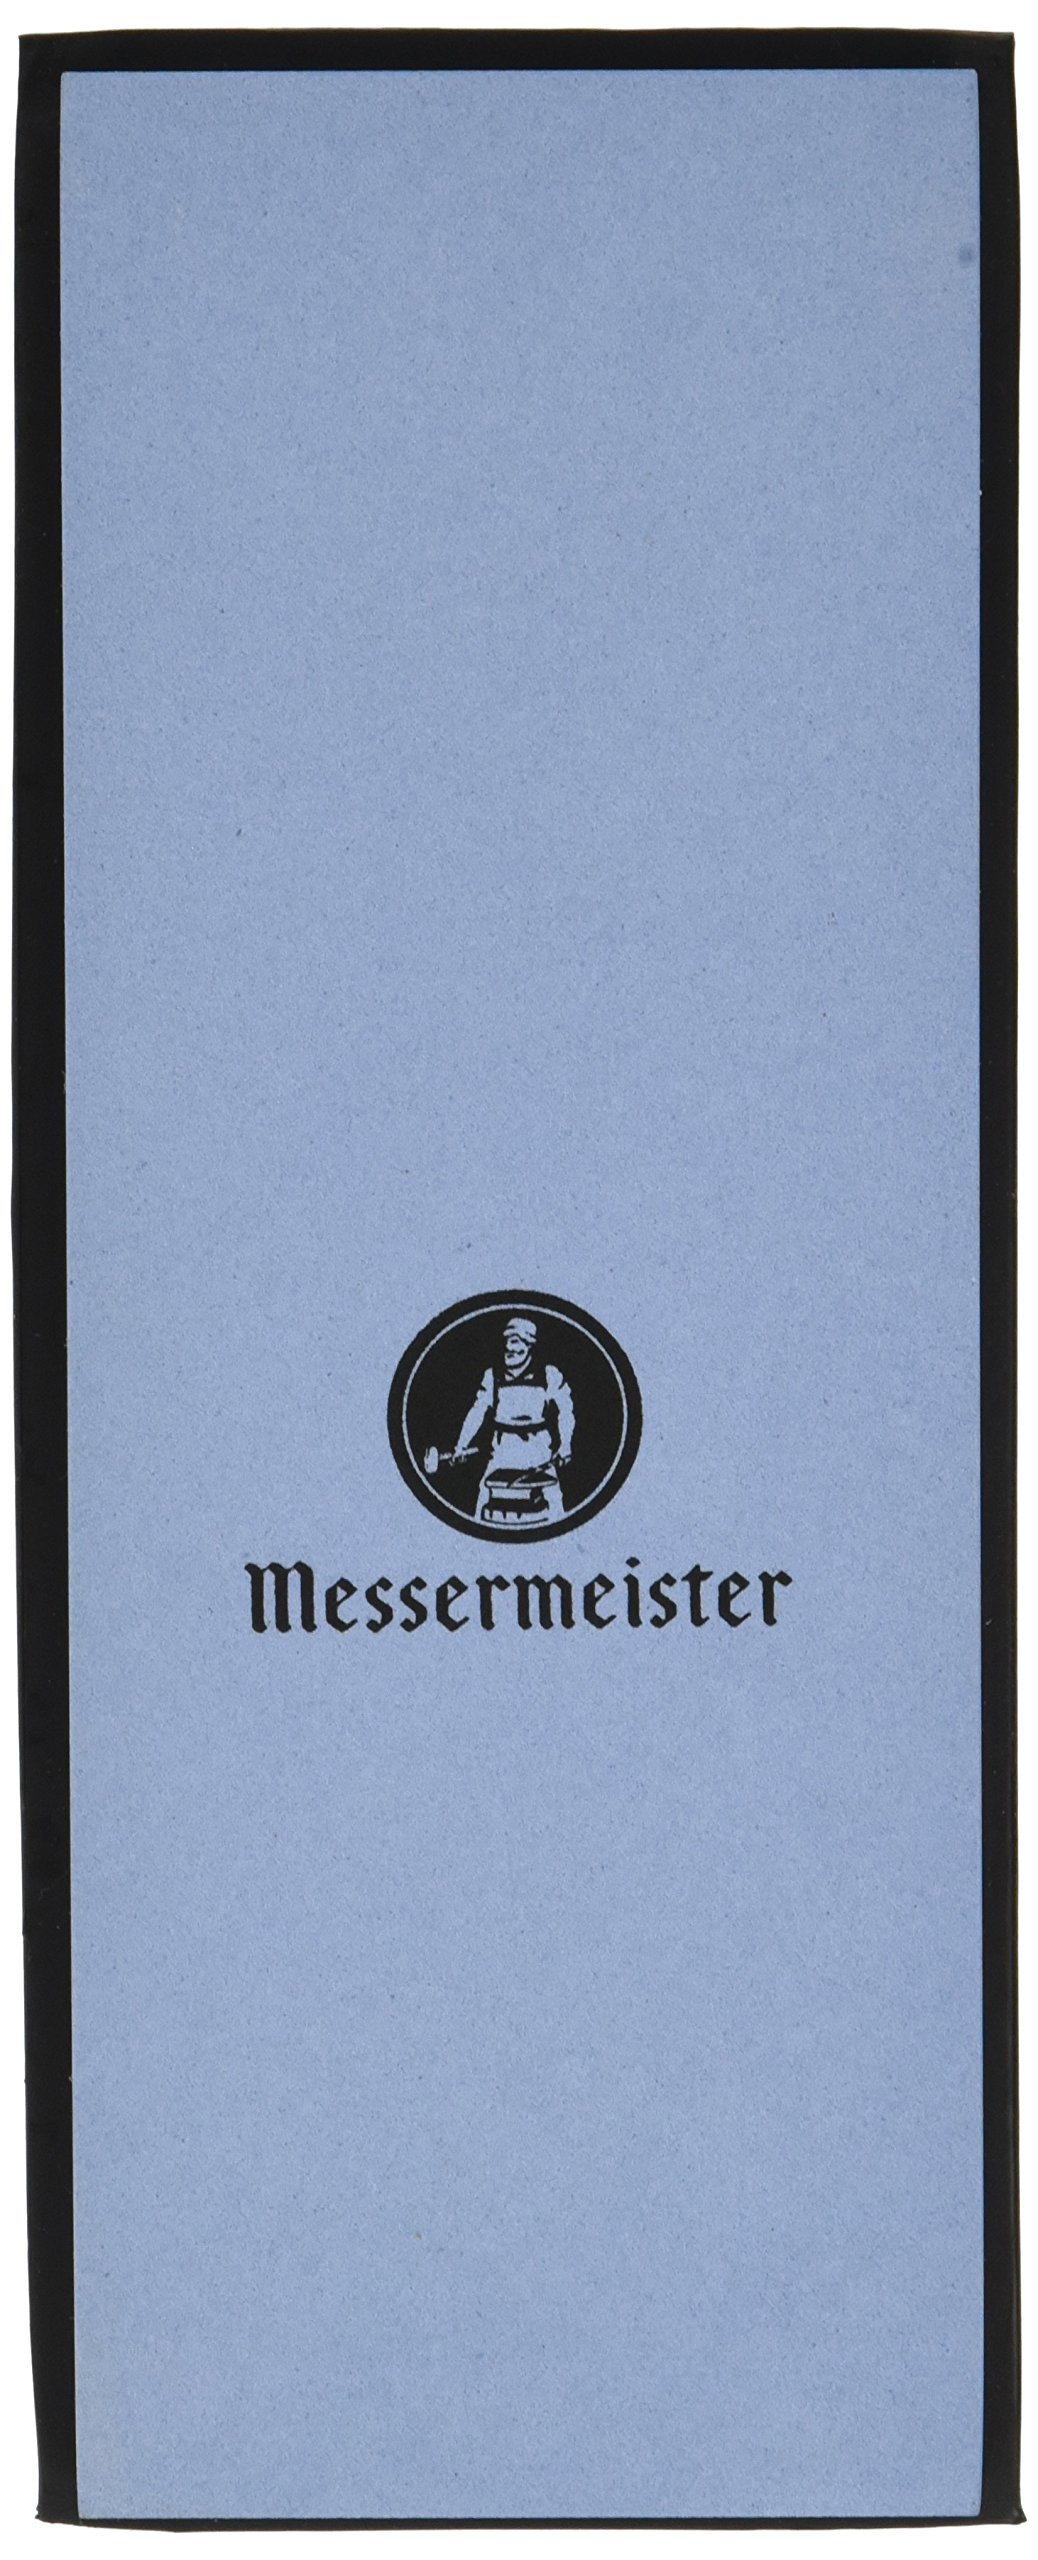 Messermeister Two-Sided Water Stone/120 & 240 Grit/Silicone Base Storage